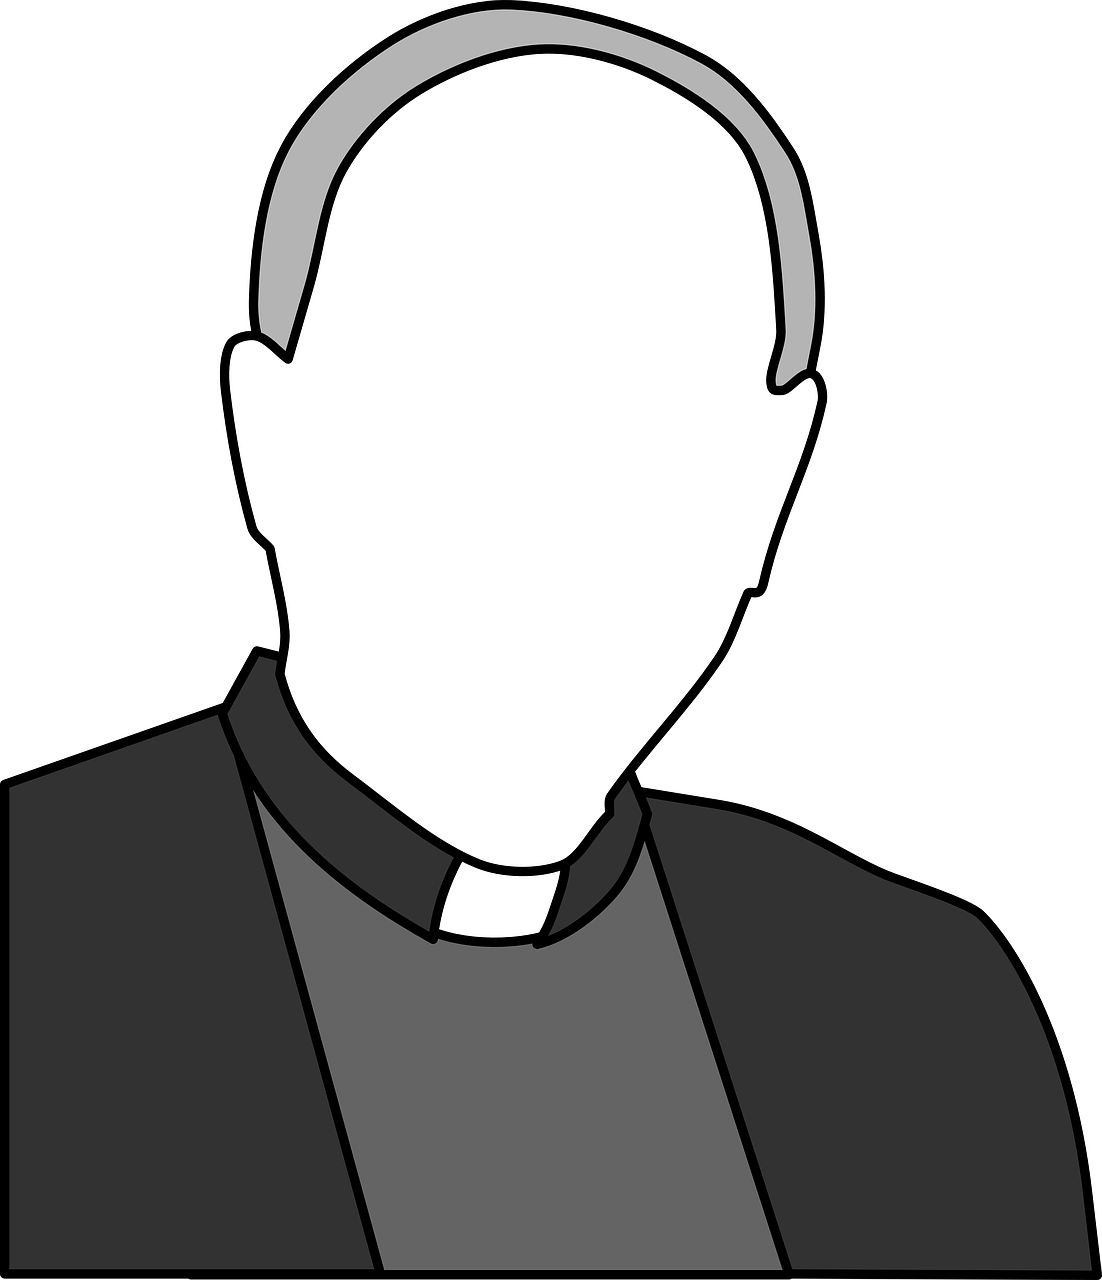 png library Church faith catholicism black. Priest drawing